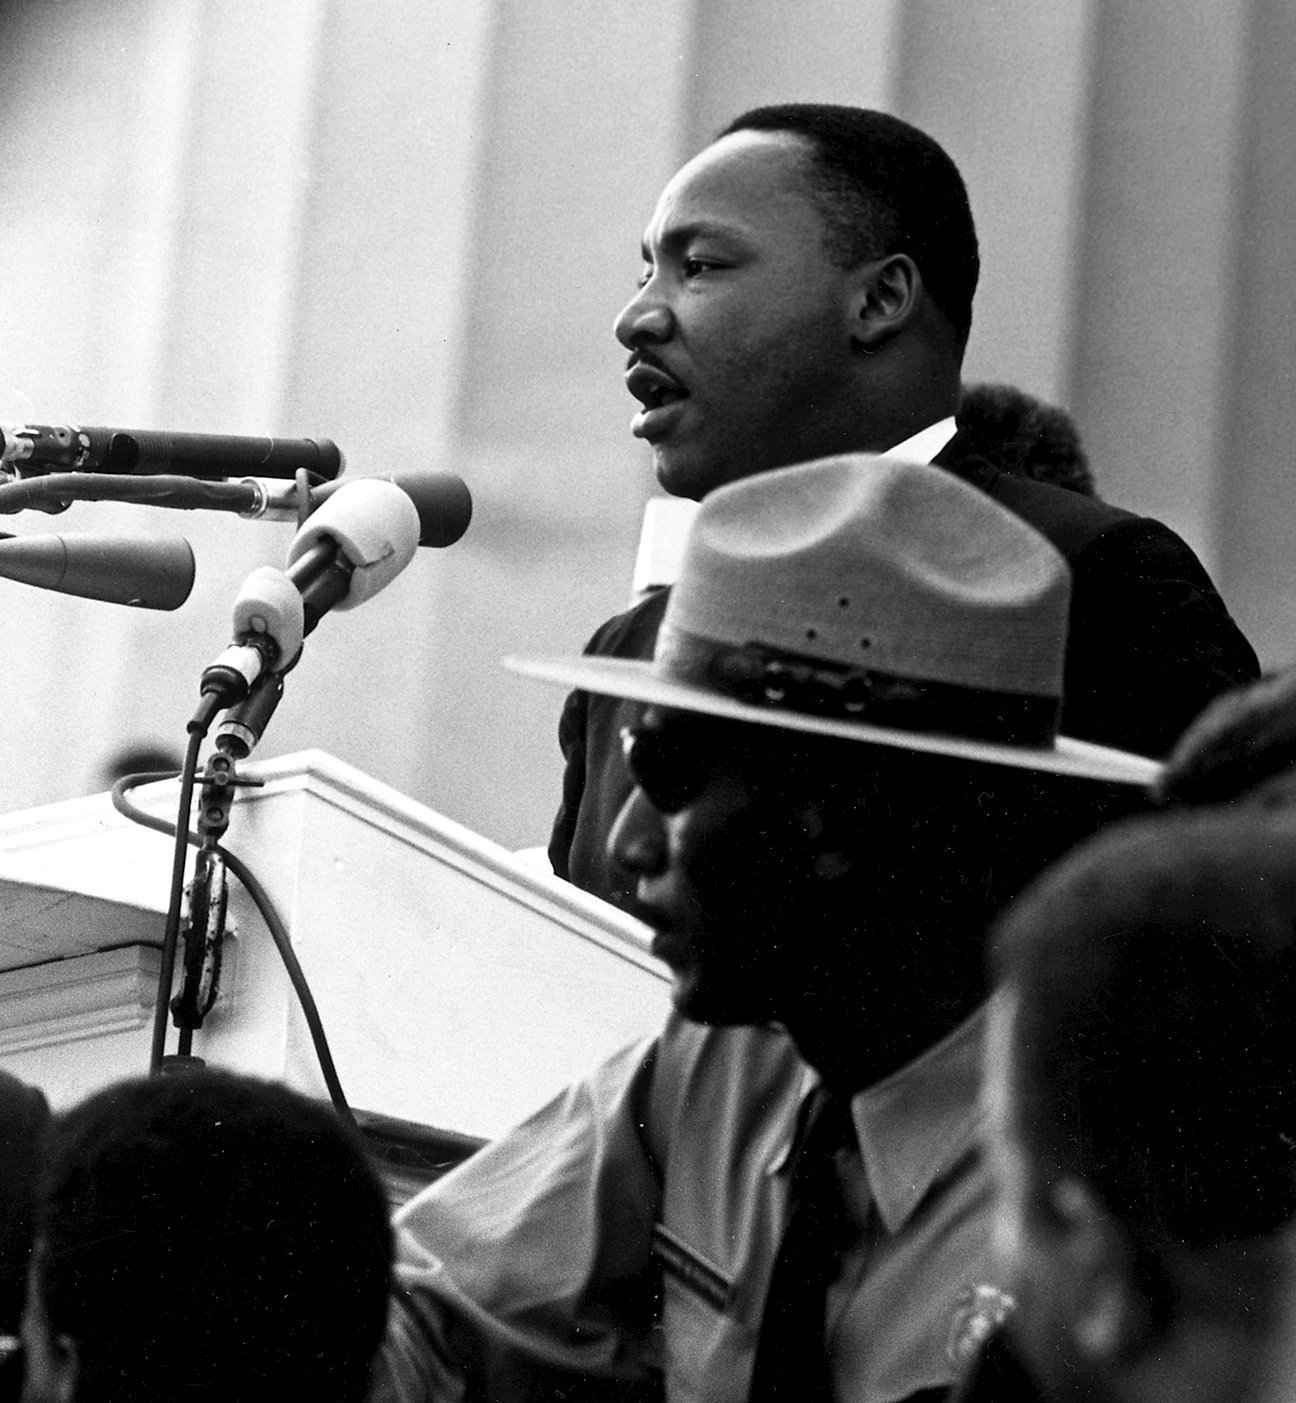 """King gave his most famous speech, """"I Have a Dream"""", before the Lincoln Memorial during the 1963 March on Washington for Jobs and Freedom. 